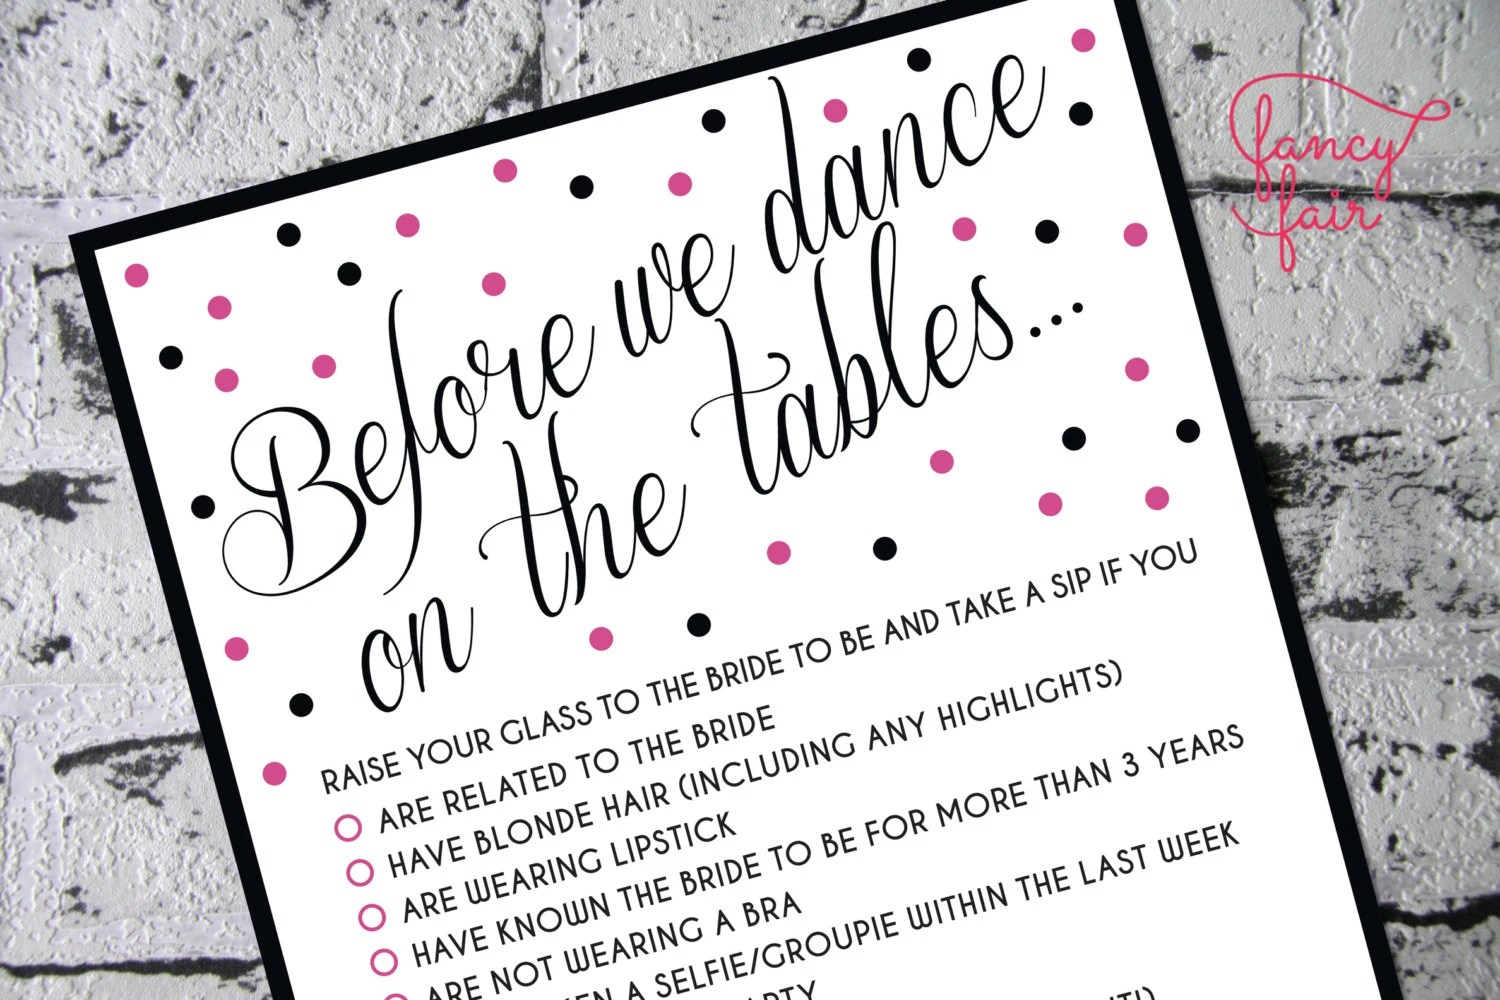 Bachelorette Party Games 3 Games Dare Cards Drink If and